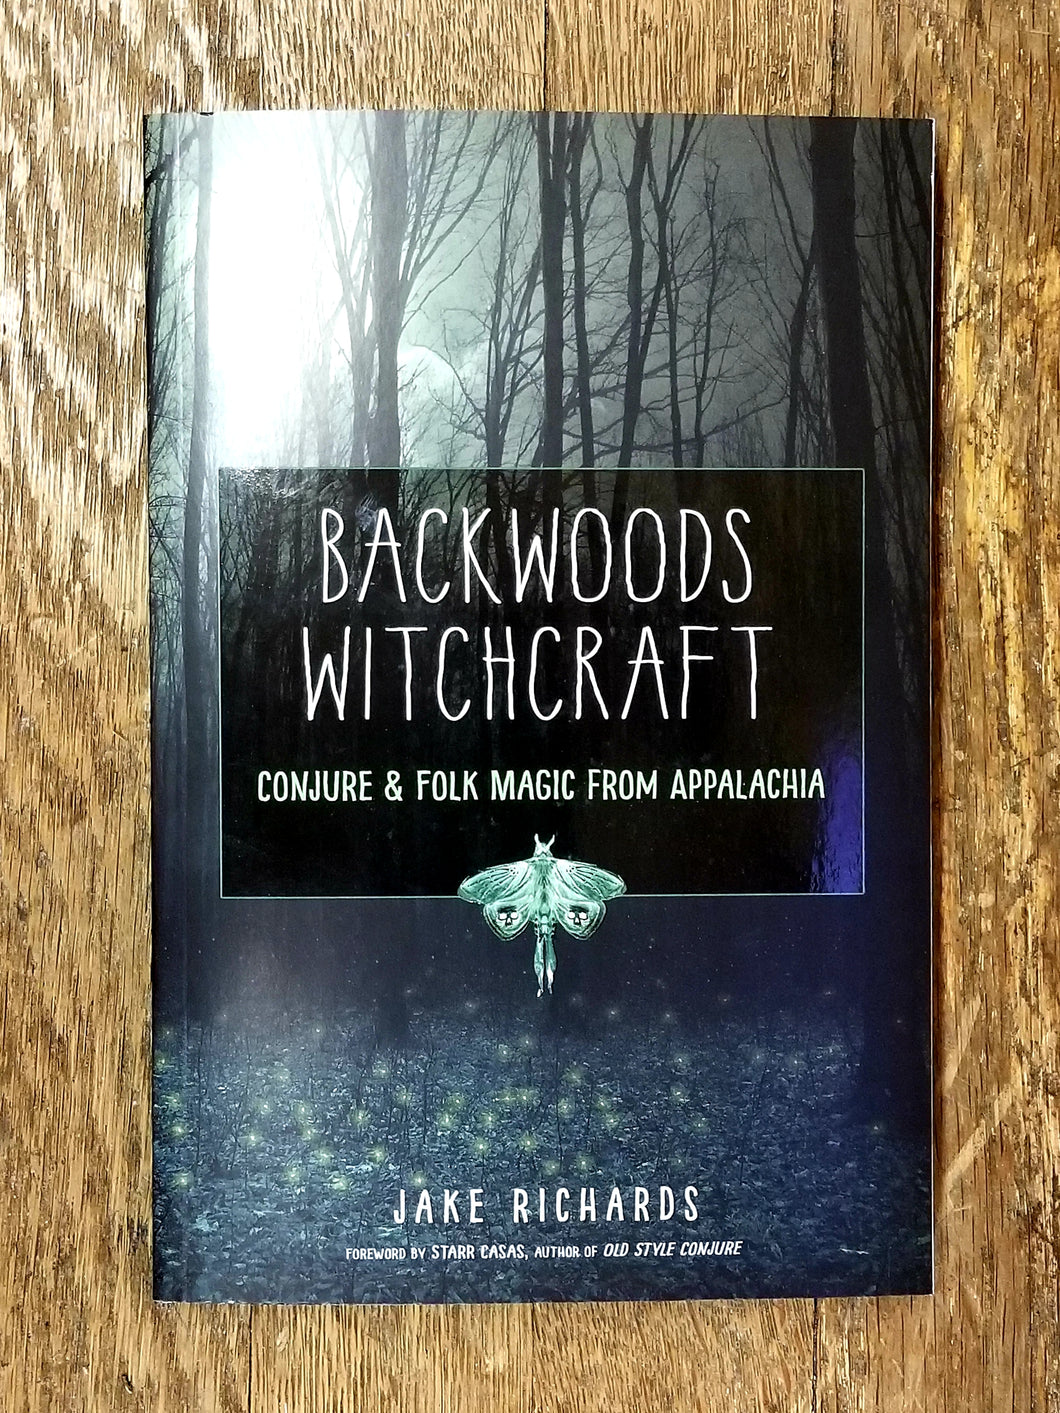 Backwoods Witchcraft: Conjure & Folk Magic from Appalachia by Jake Richards